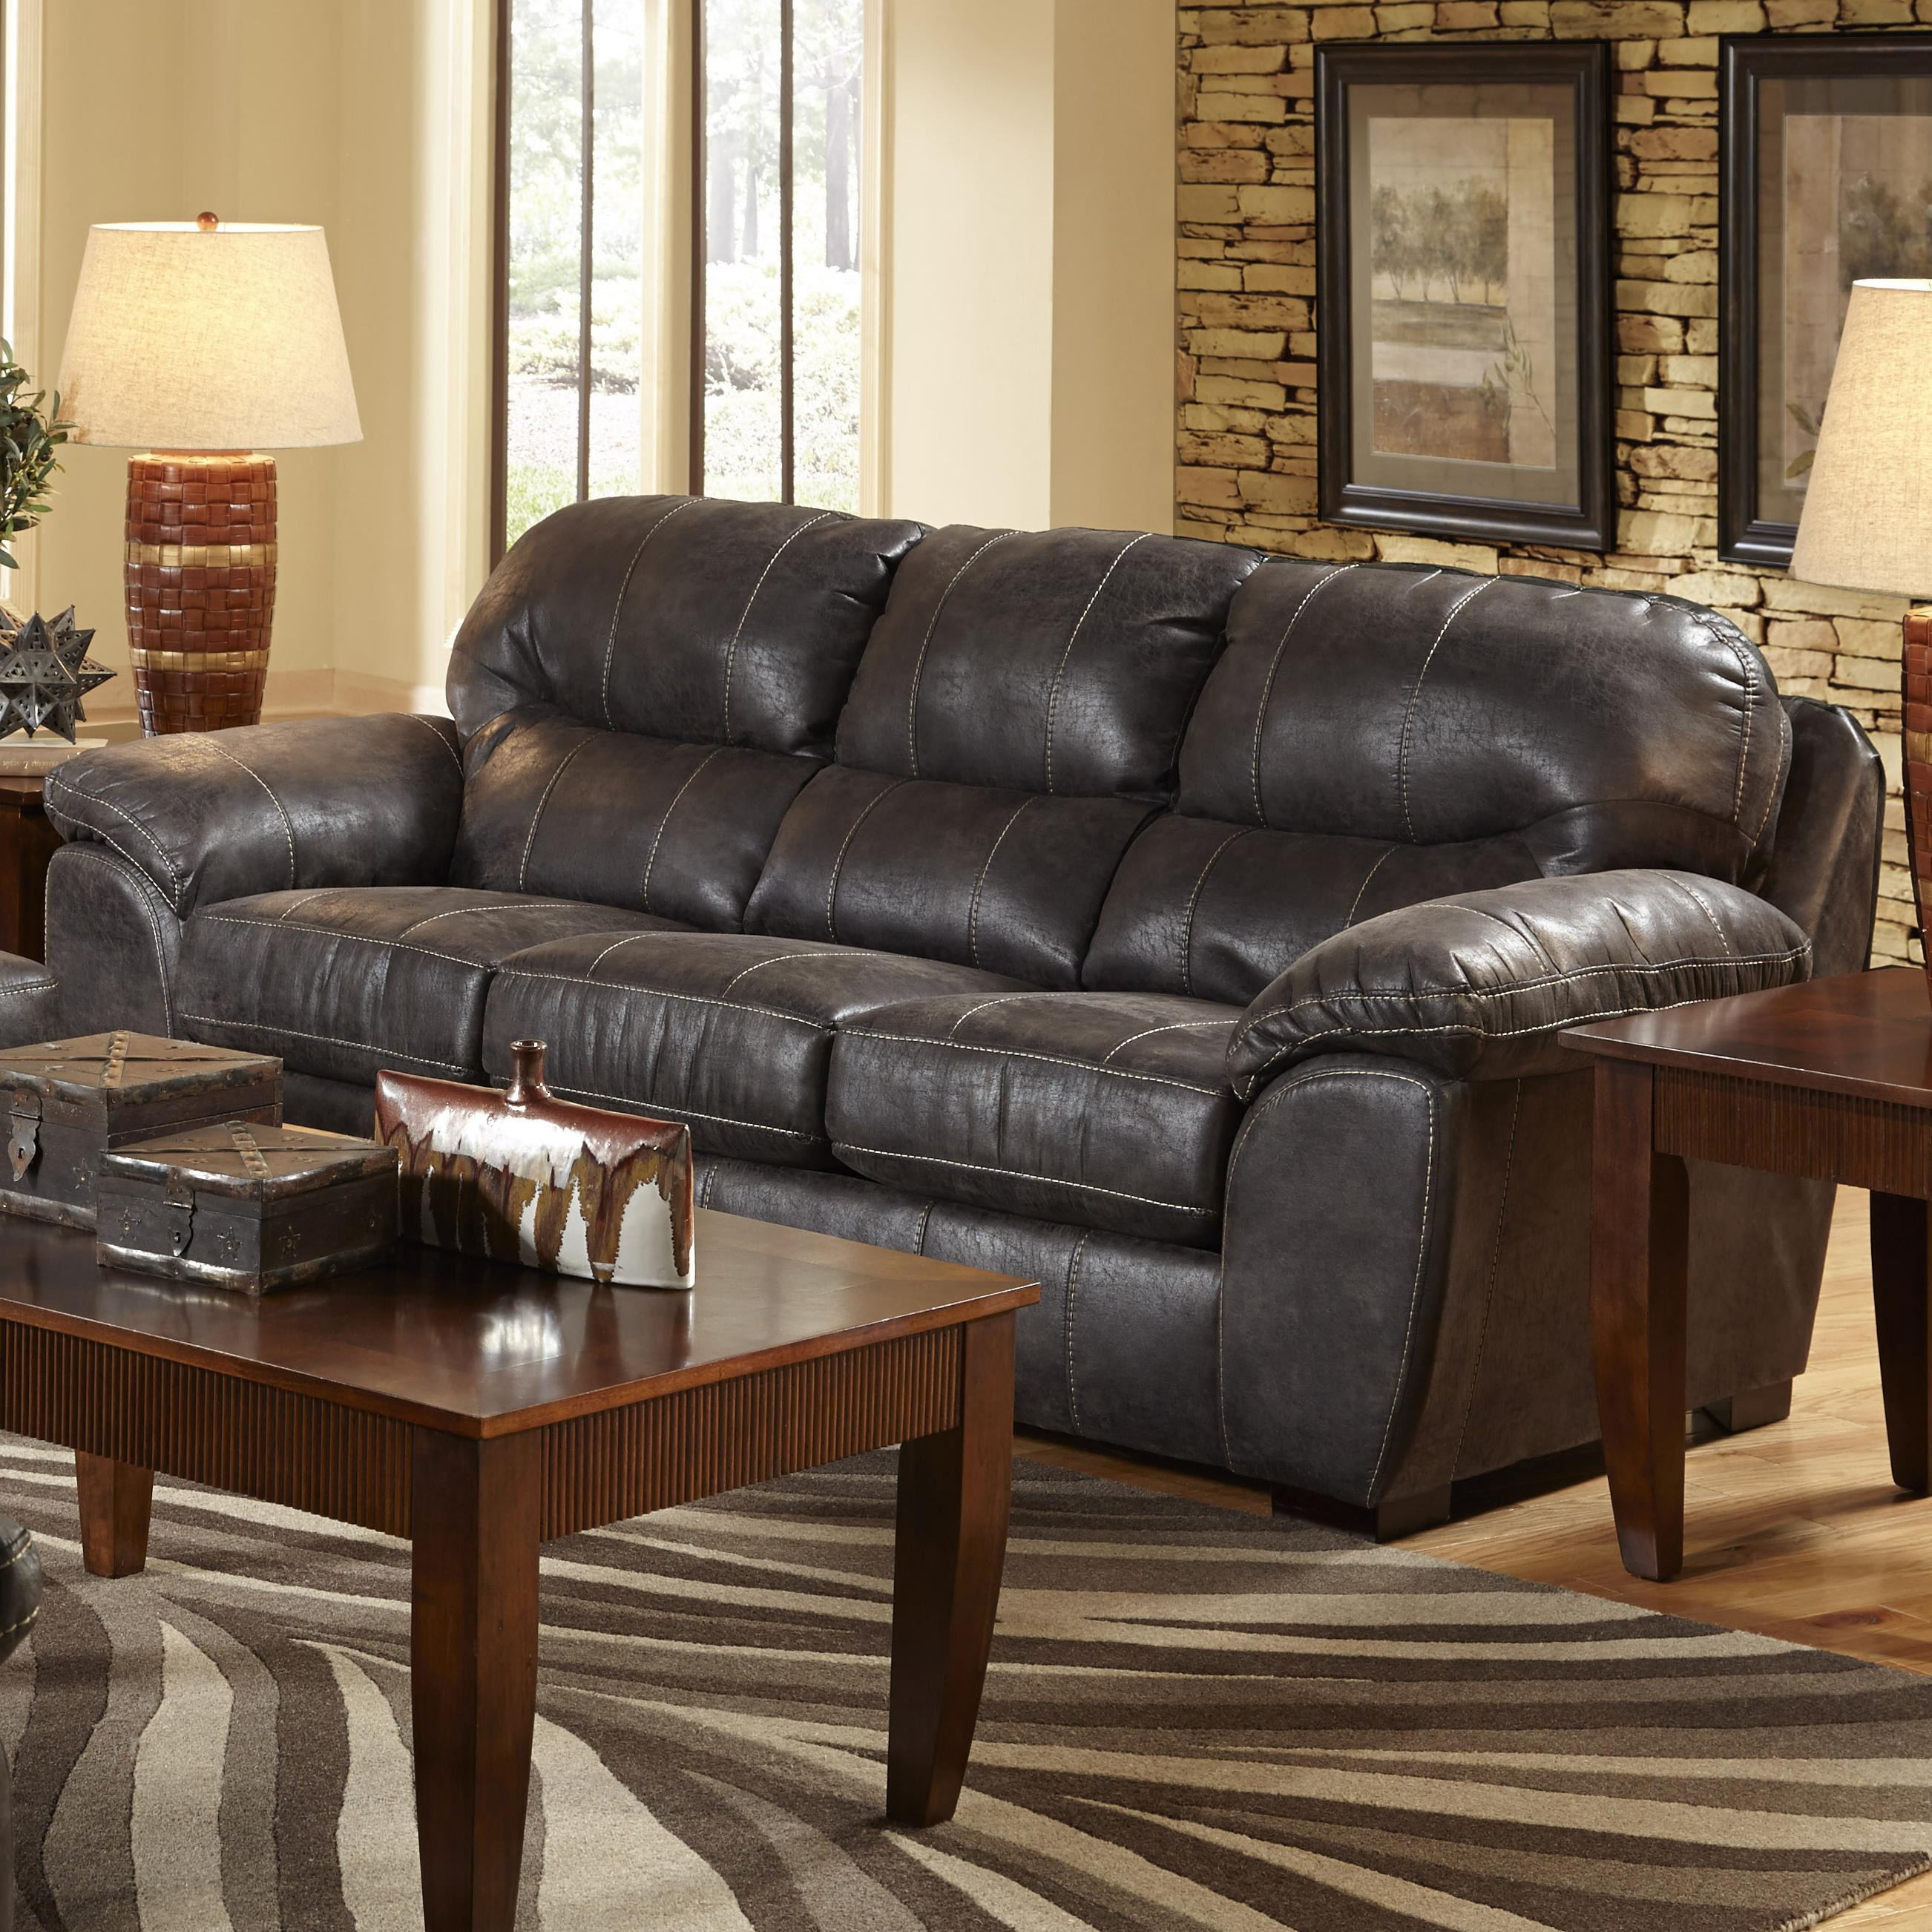 Jackson Furniture Grant Sofa for Living Rooms and Family